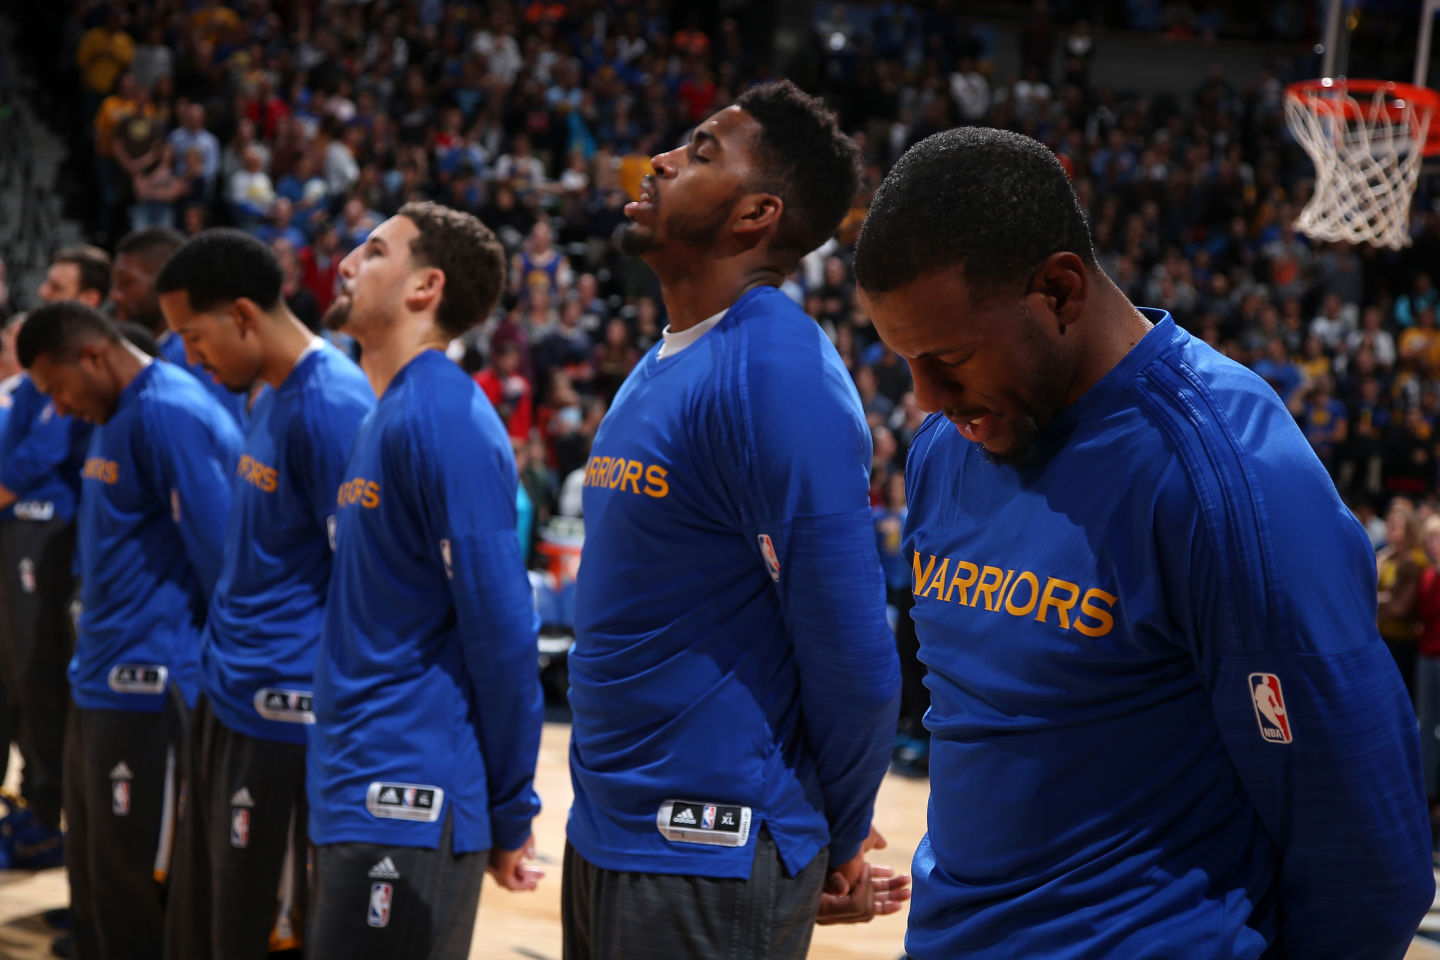 Andre Iguodala (R) and his teammates observe the national anthem prior to facing the Denver Nuggets Nov. 22, 2015. (Doug Pensinger/Getty Images)